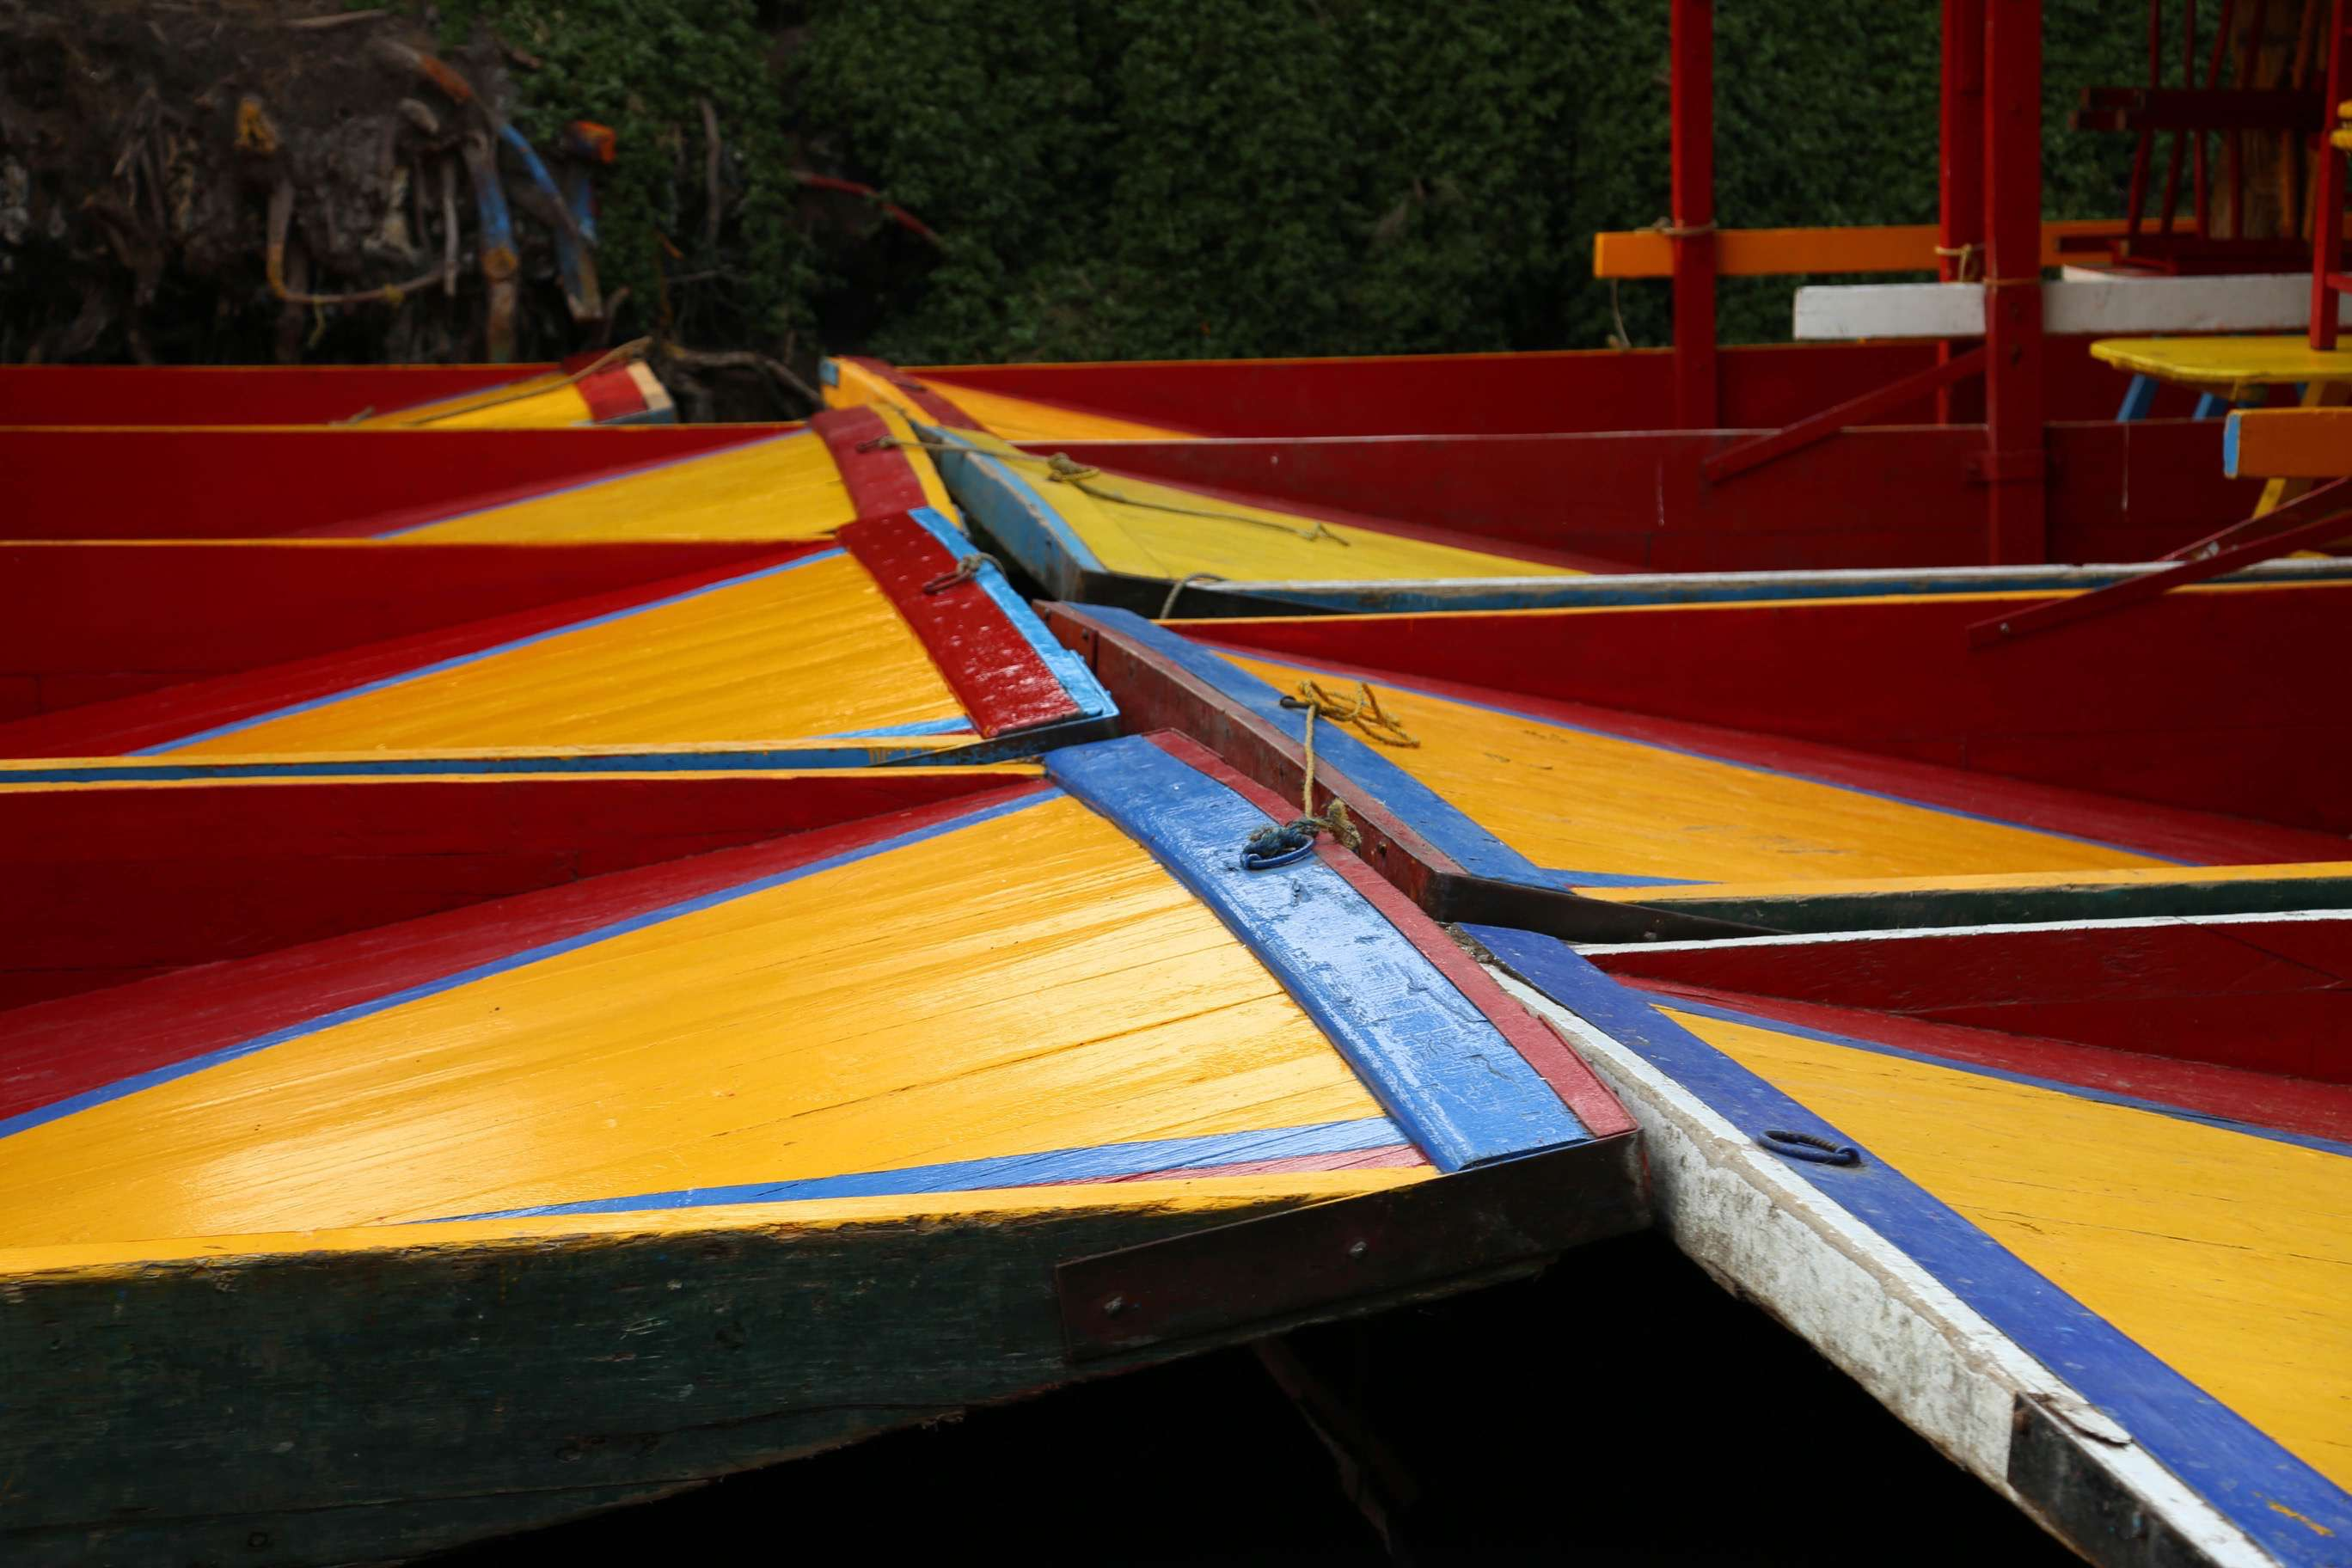 A group of trajineras are berthed together at the canals of Xochimilco.